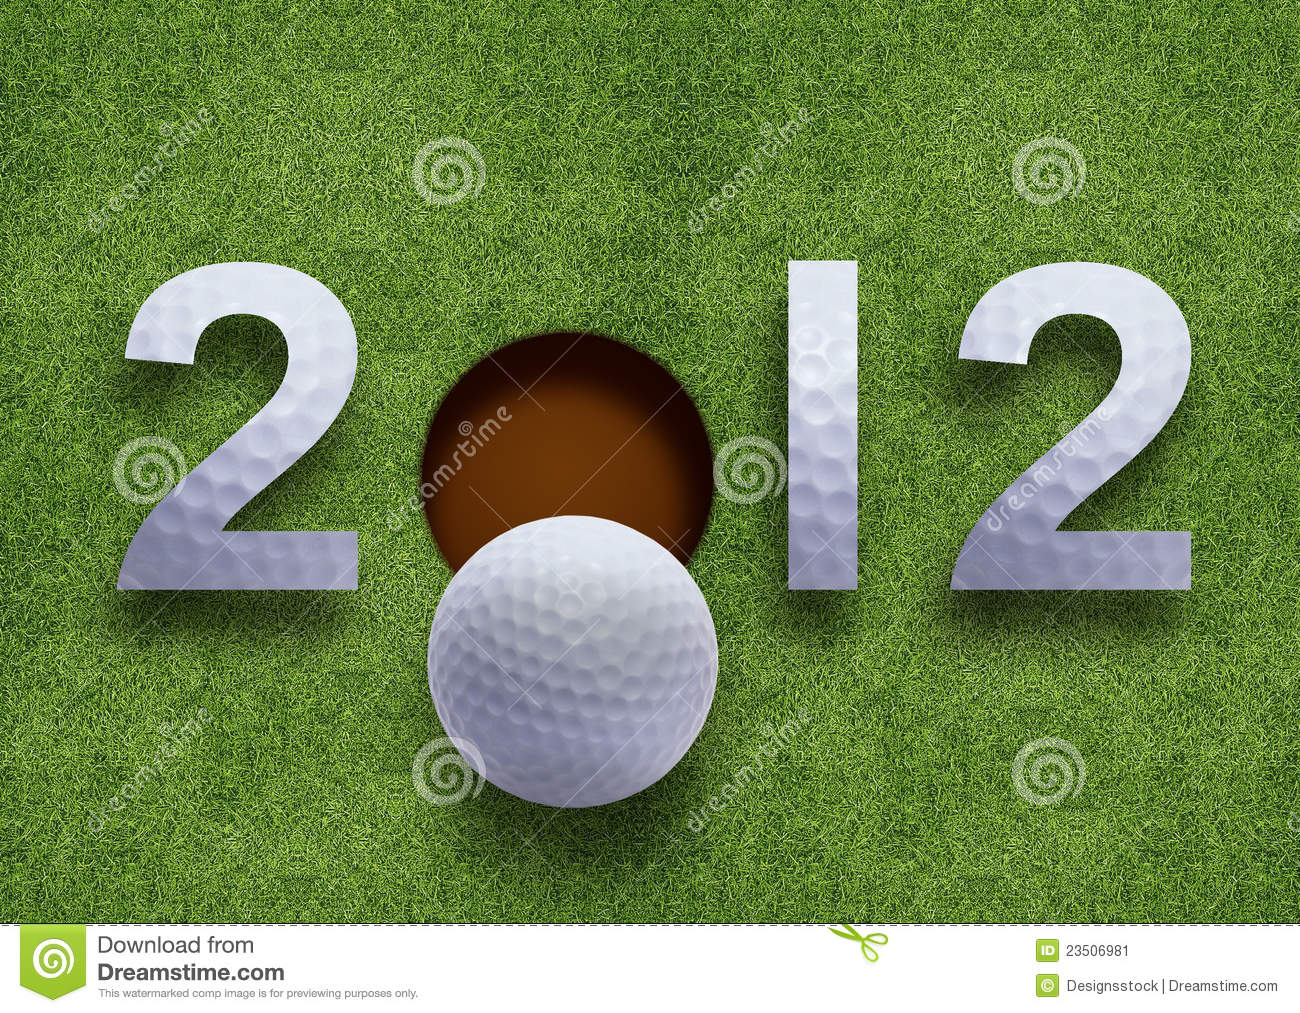 Happy new year 2012 golf sport conceptual image